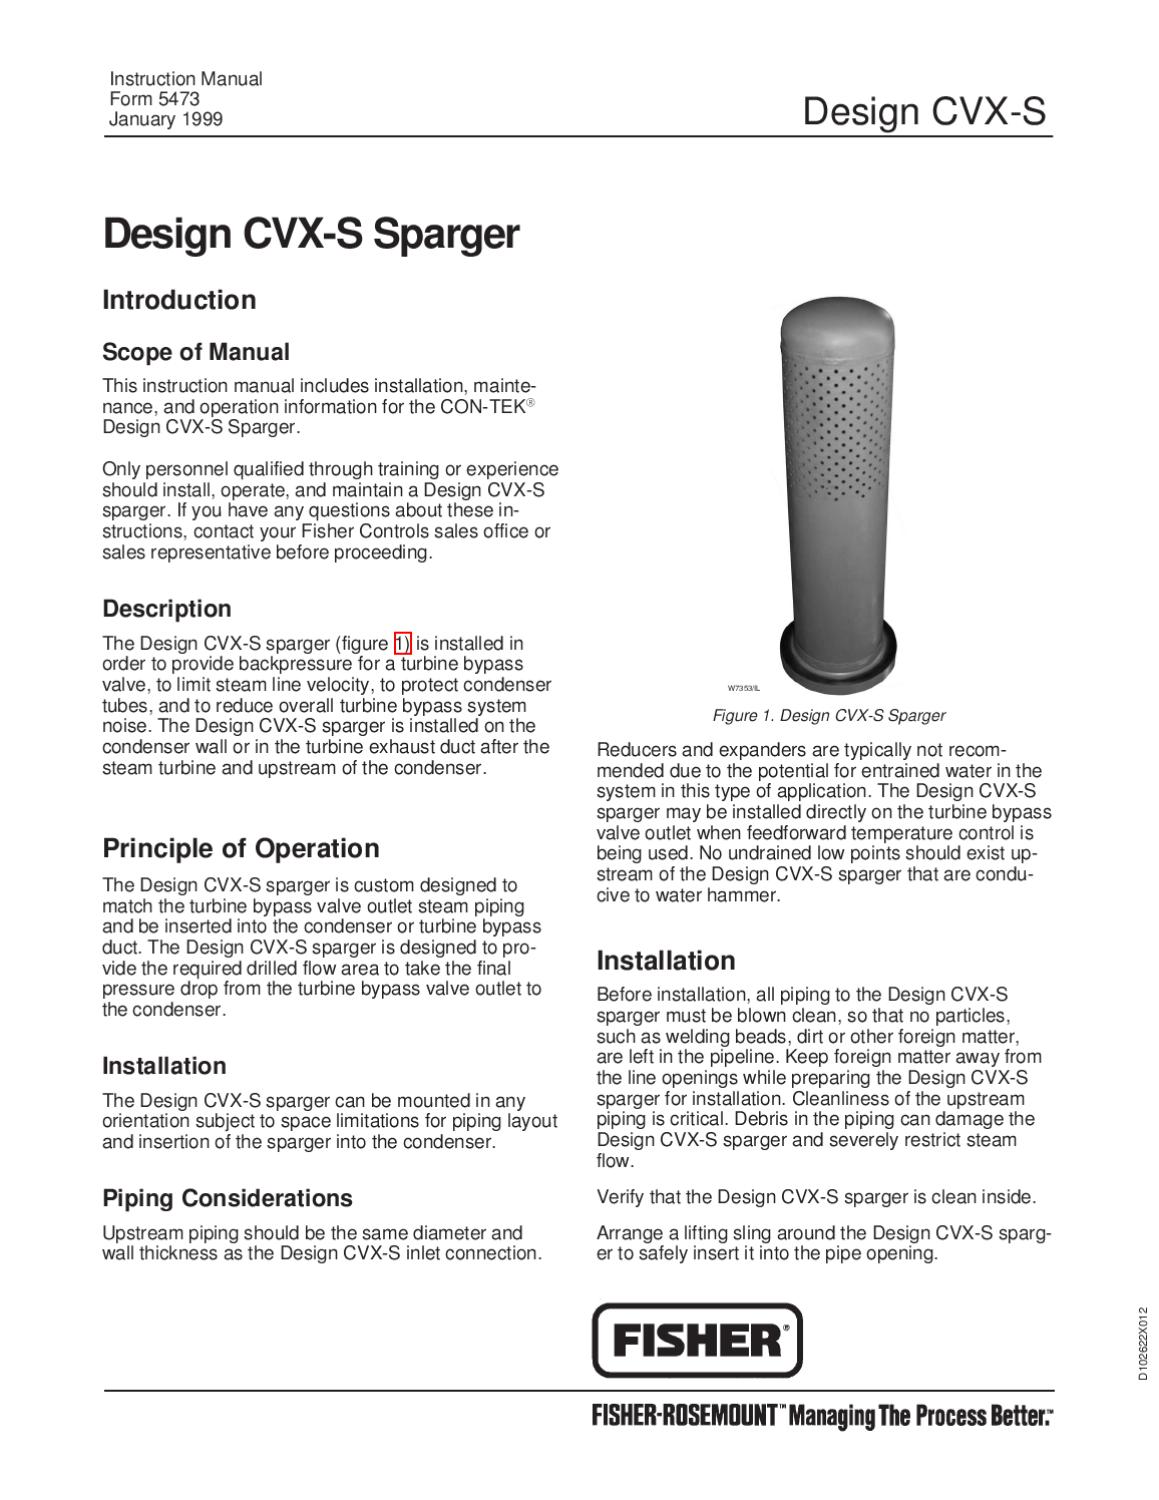 hight resolution of cvx s sparger instruction manual by rmc process controls filtration inc issuu